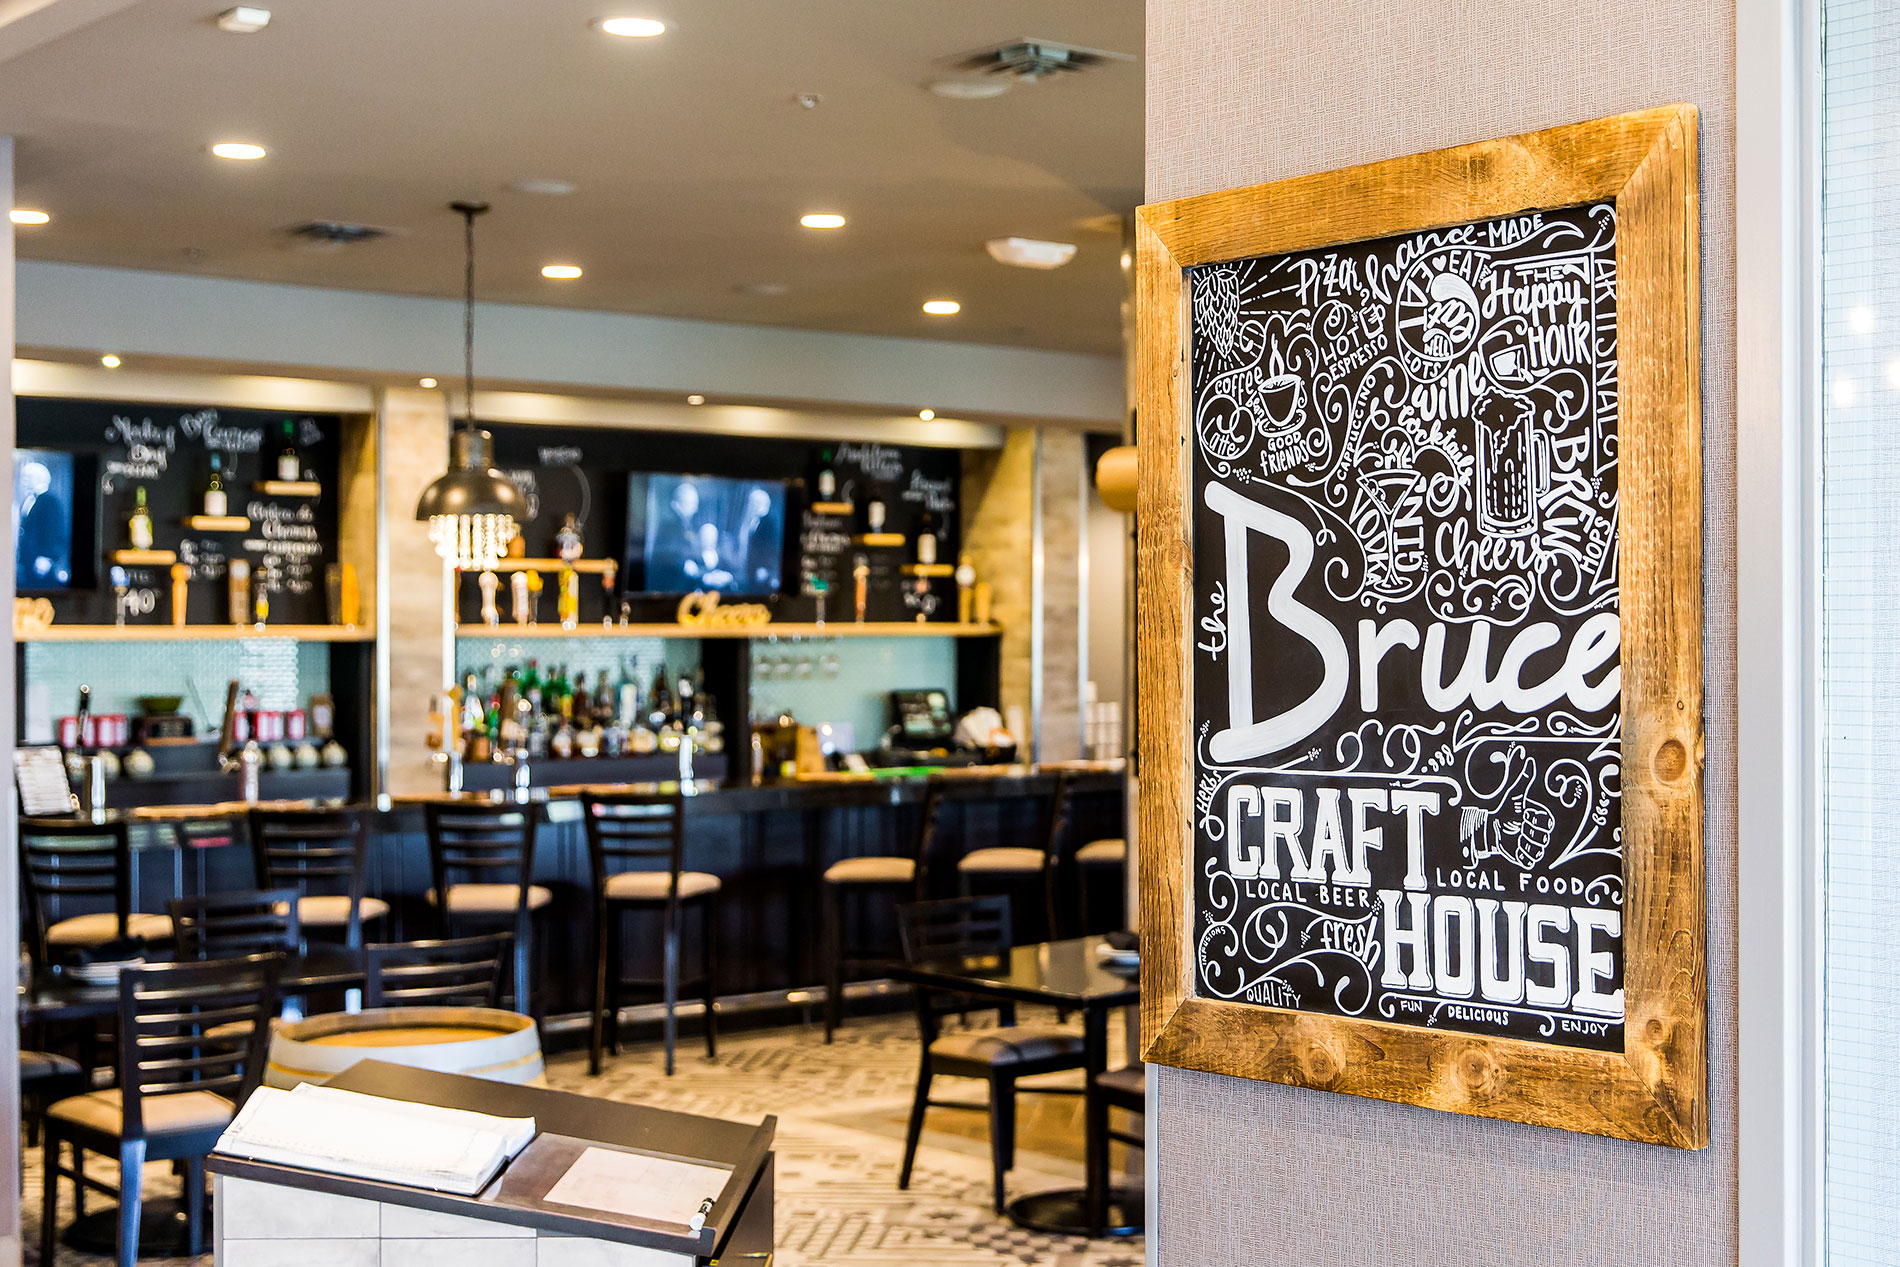 The Bruce Craft House